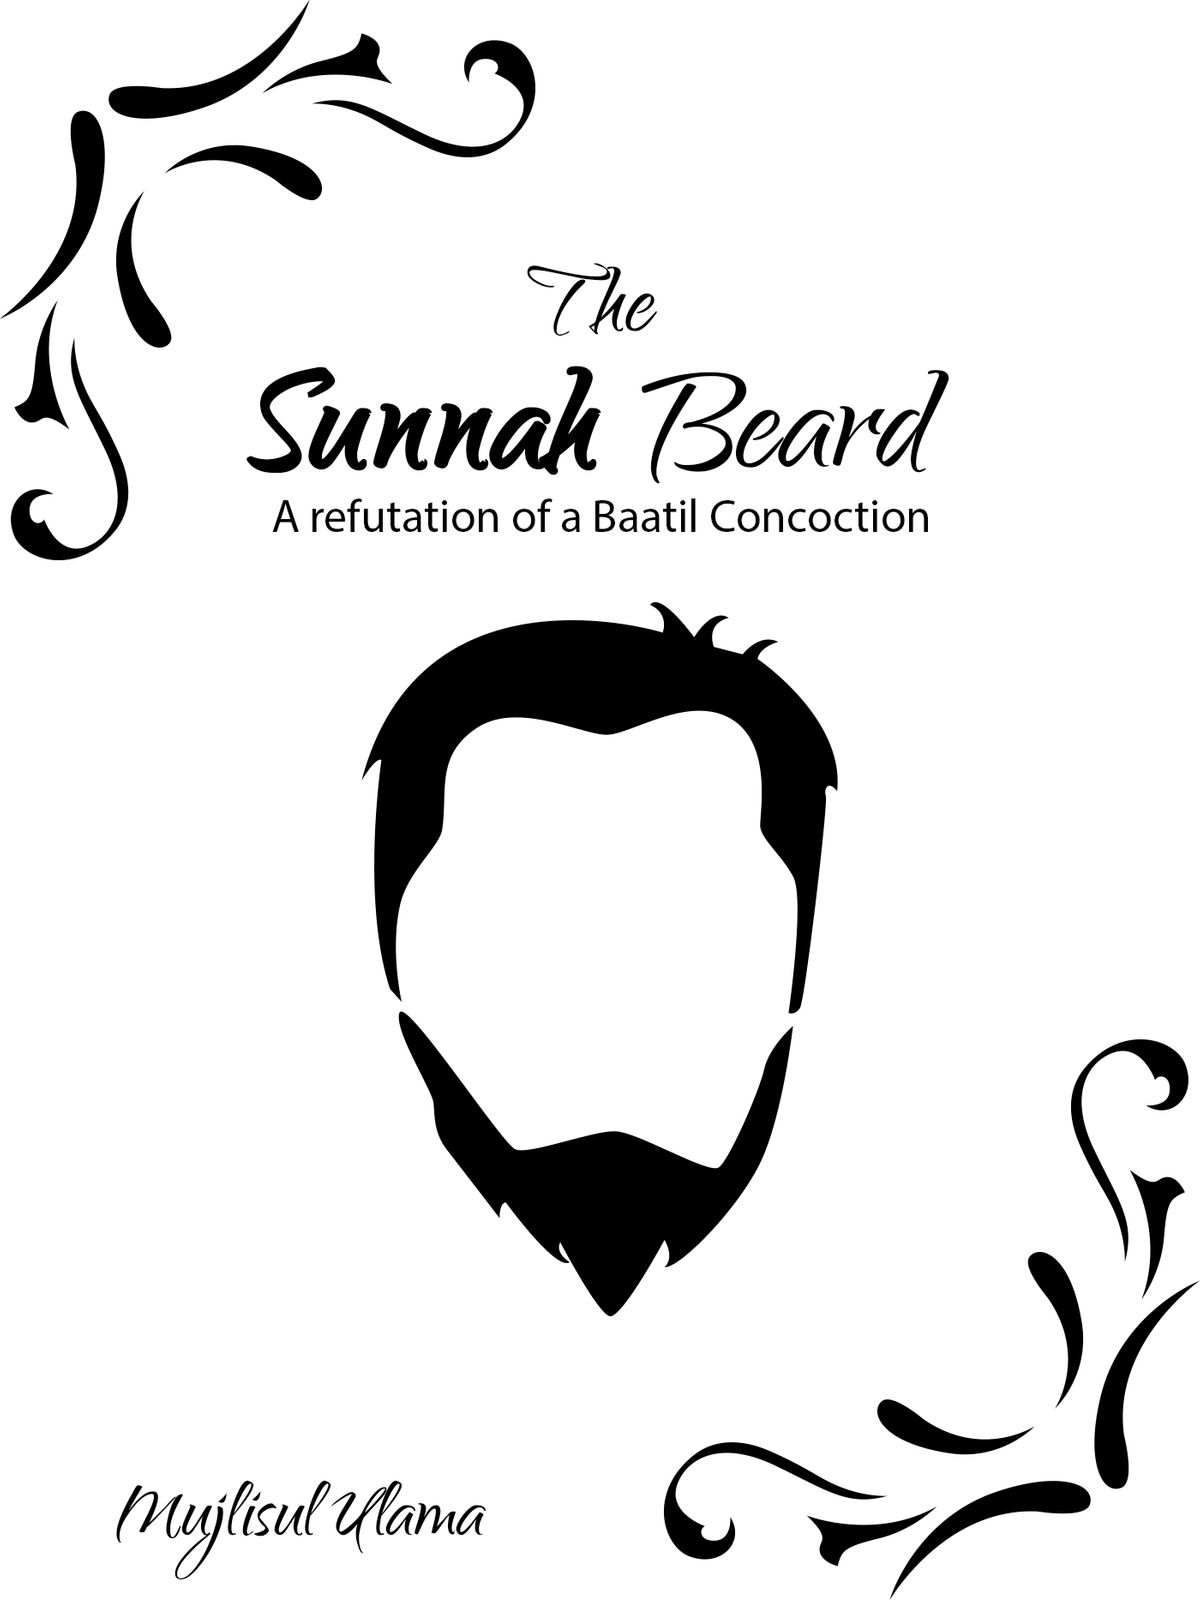 banner freeuse download Beard clipart sunnah. The a refutation of.